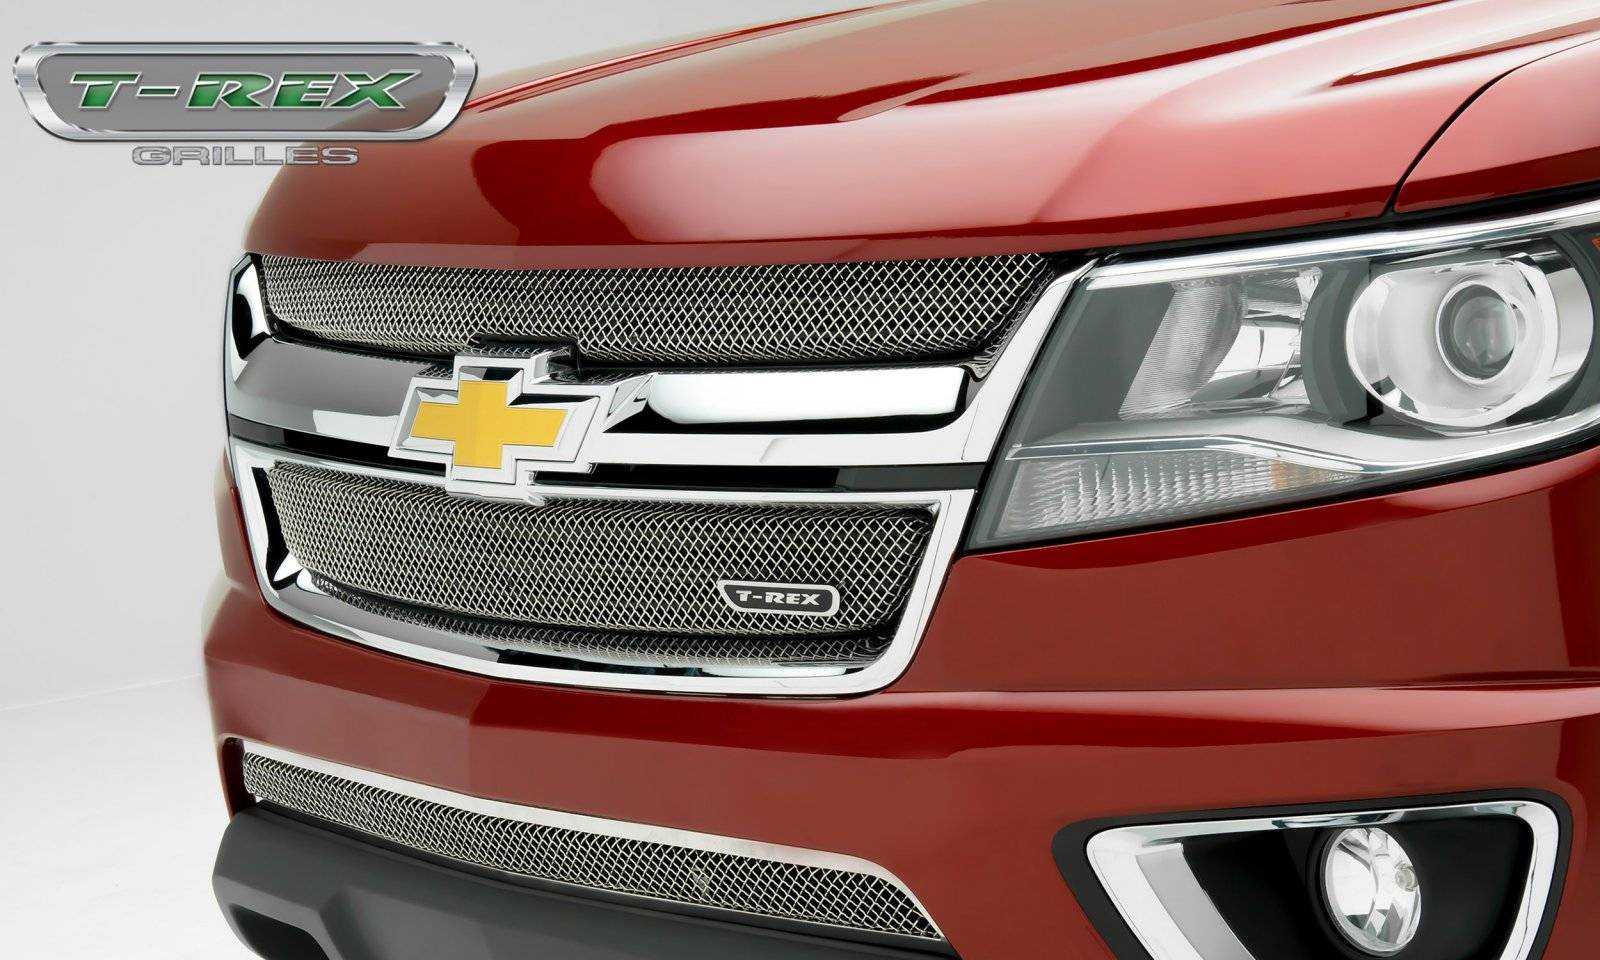 T-REX Grilles - Chevrolet Colorado - Sport Series - Main Grille Mesh Overlay  with Chrome Plated Finish - Pt # 44267